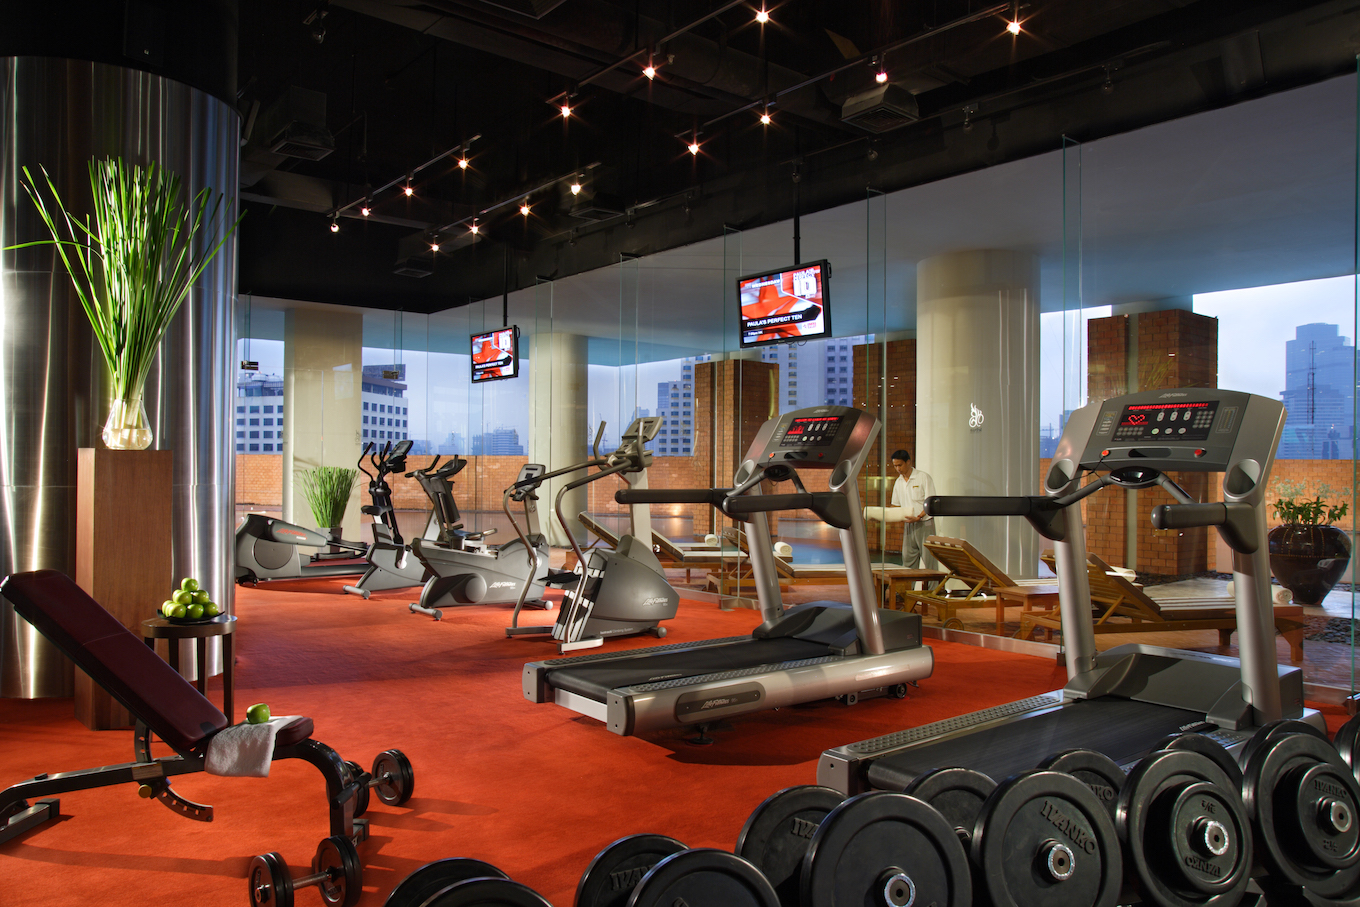 Hotel gym with treadmills and weights